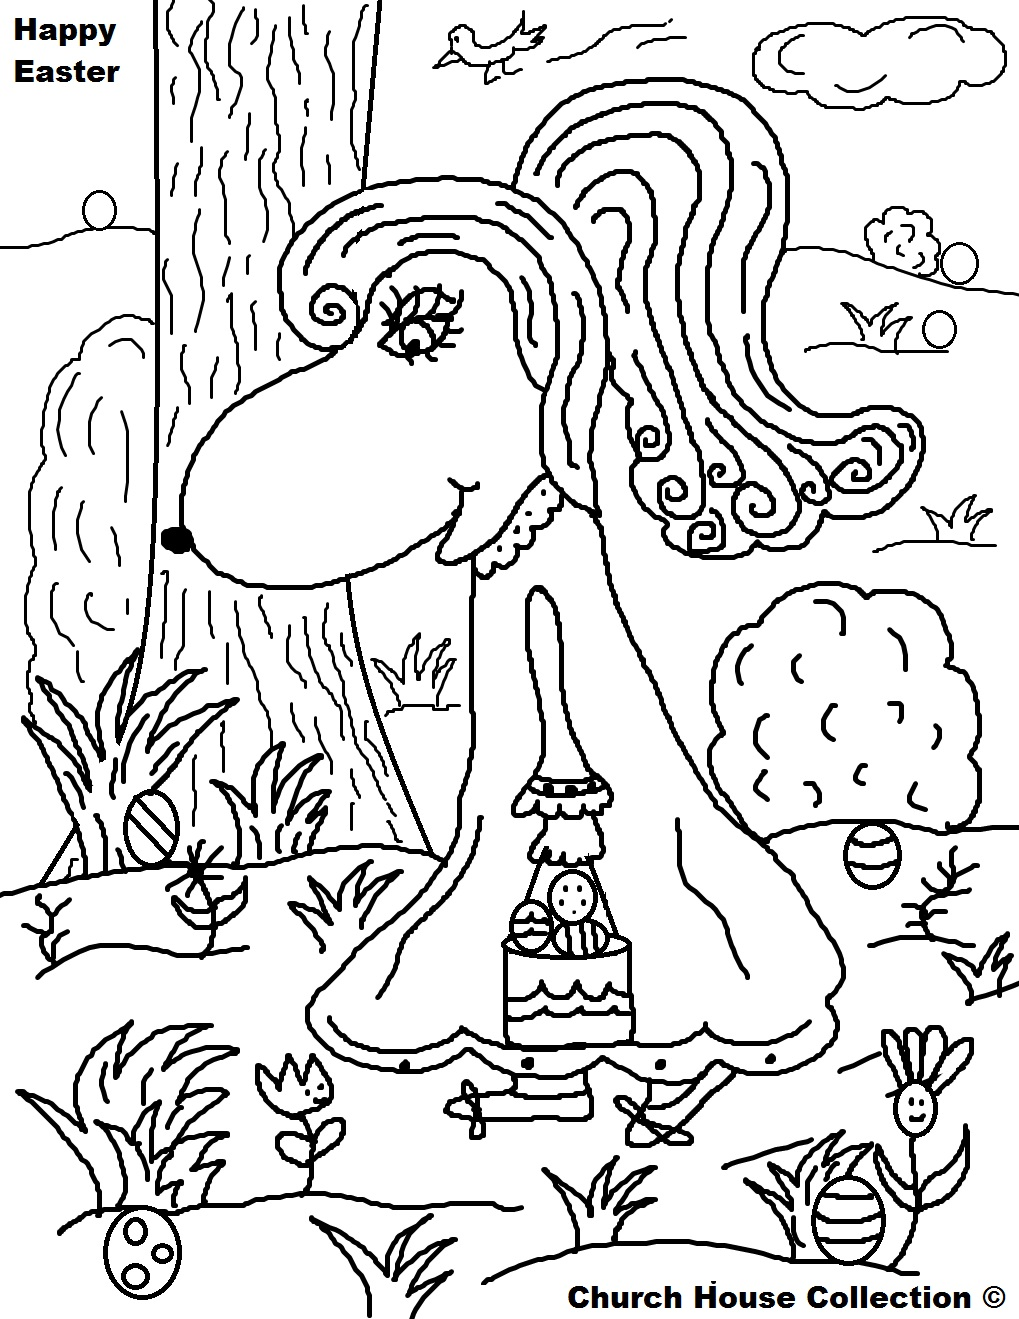 Girl Animal Hunting Easter Eggs Coloring Page